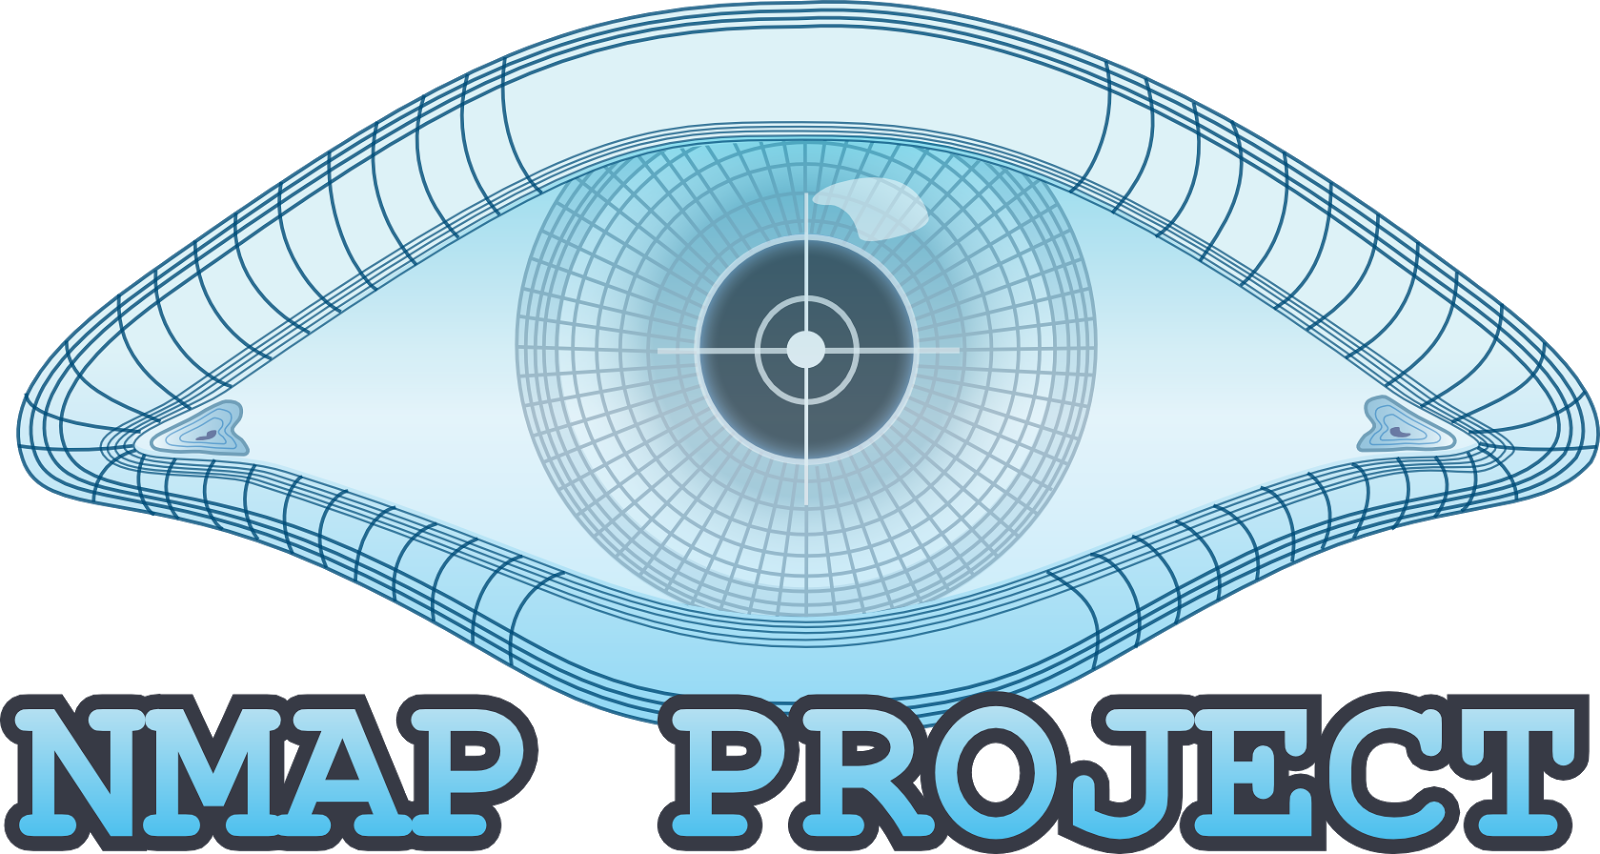 nmap network mapper tool